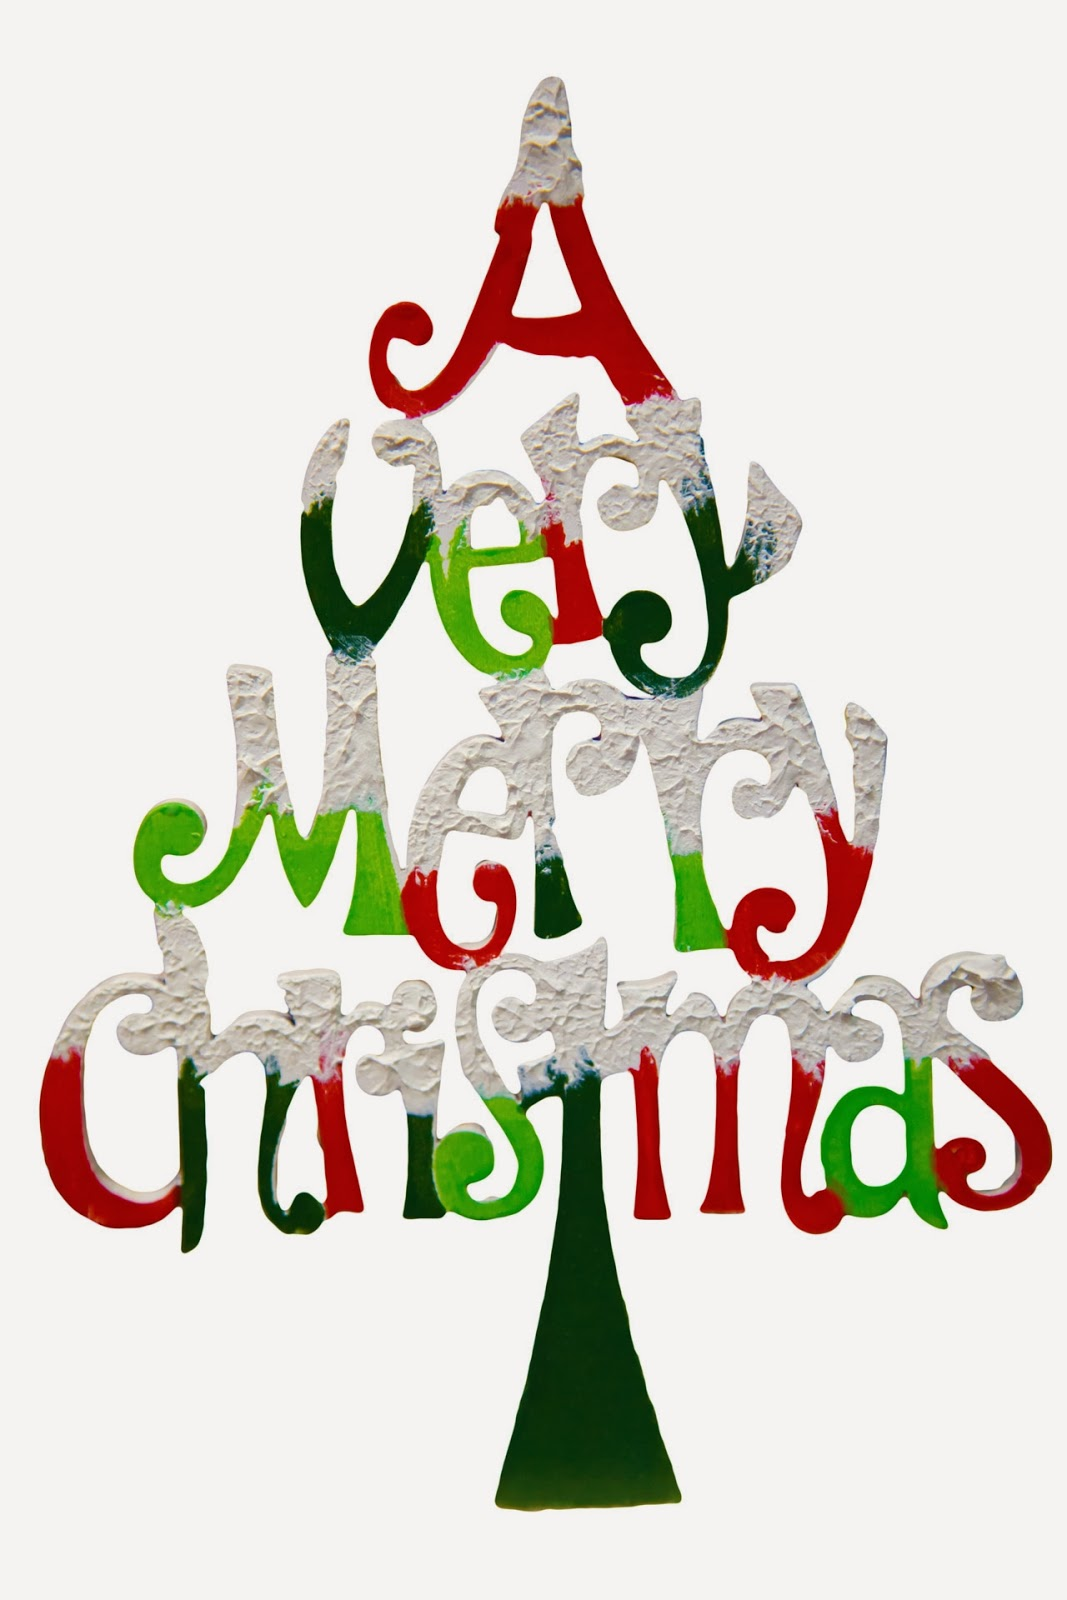 Religious Merry Christmas Clipart | Clipart library - Free Clipart. merry christmas (1).jpg